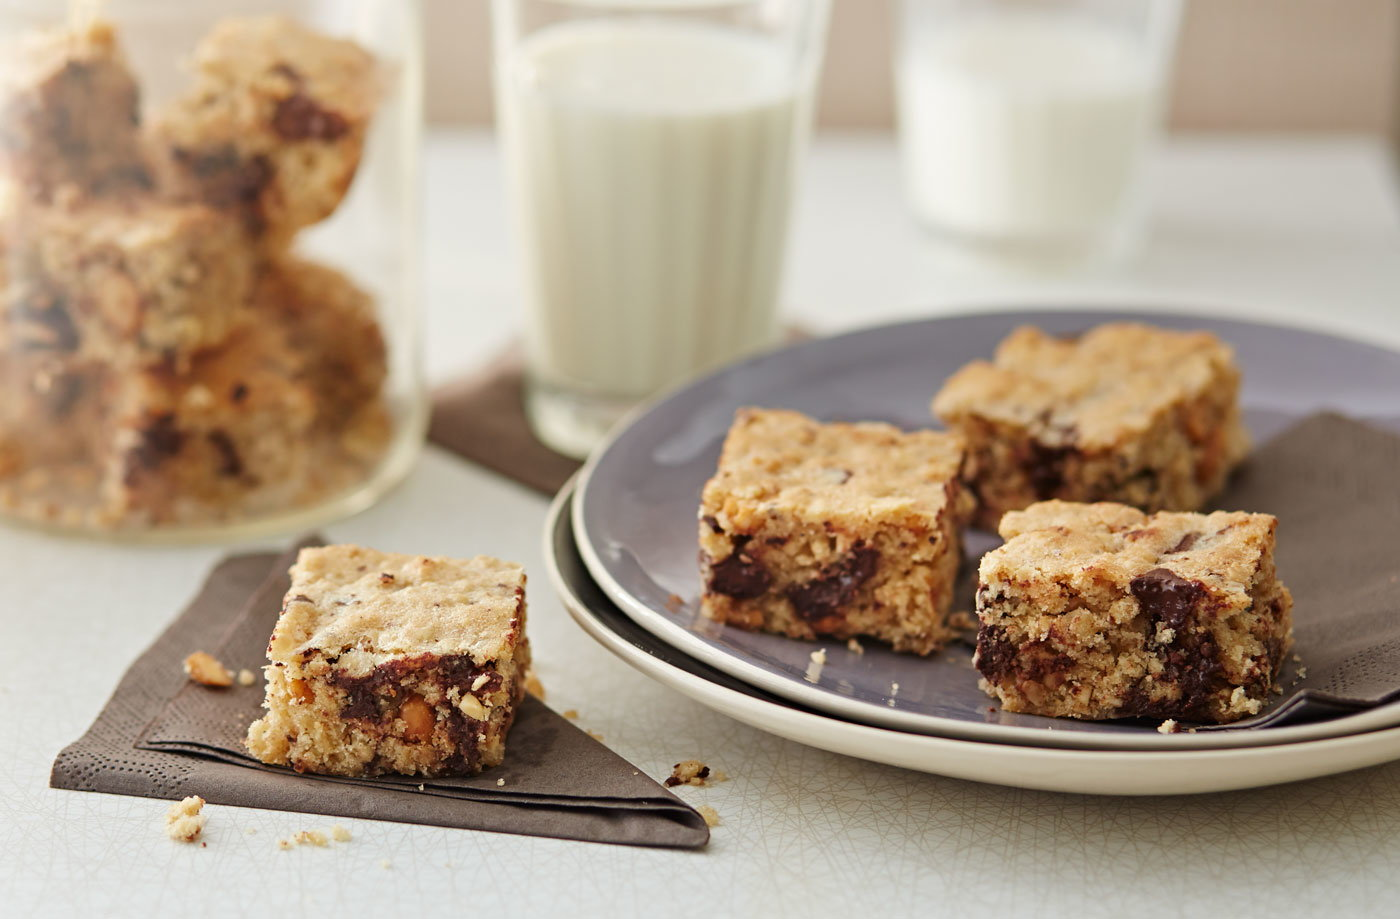 Peanut butter and chocolate cookie bars recipe